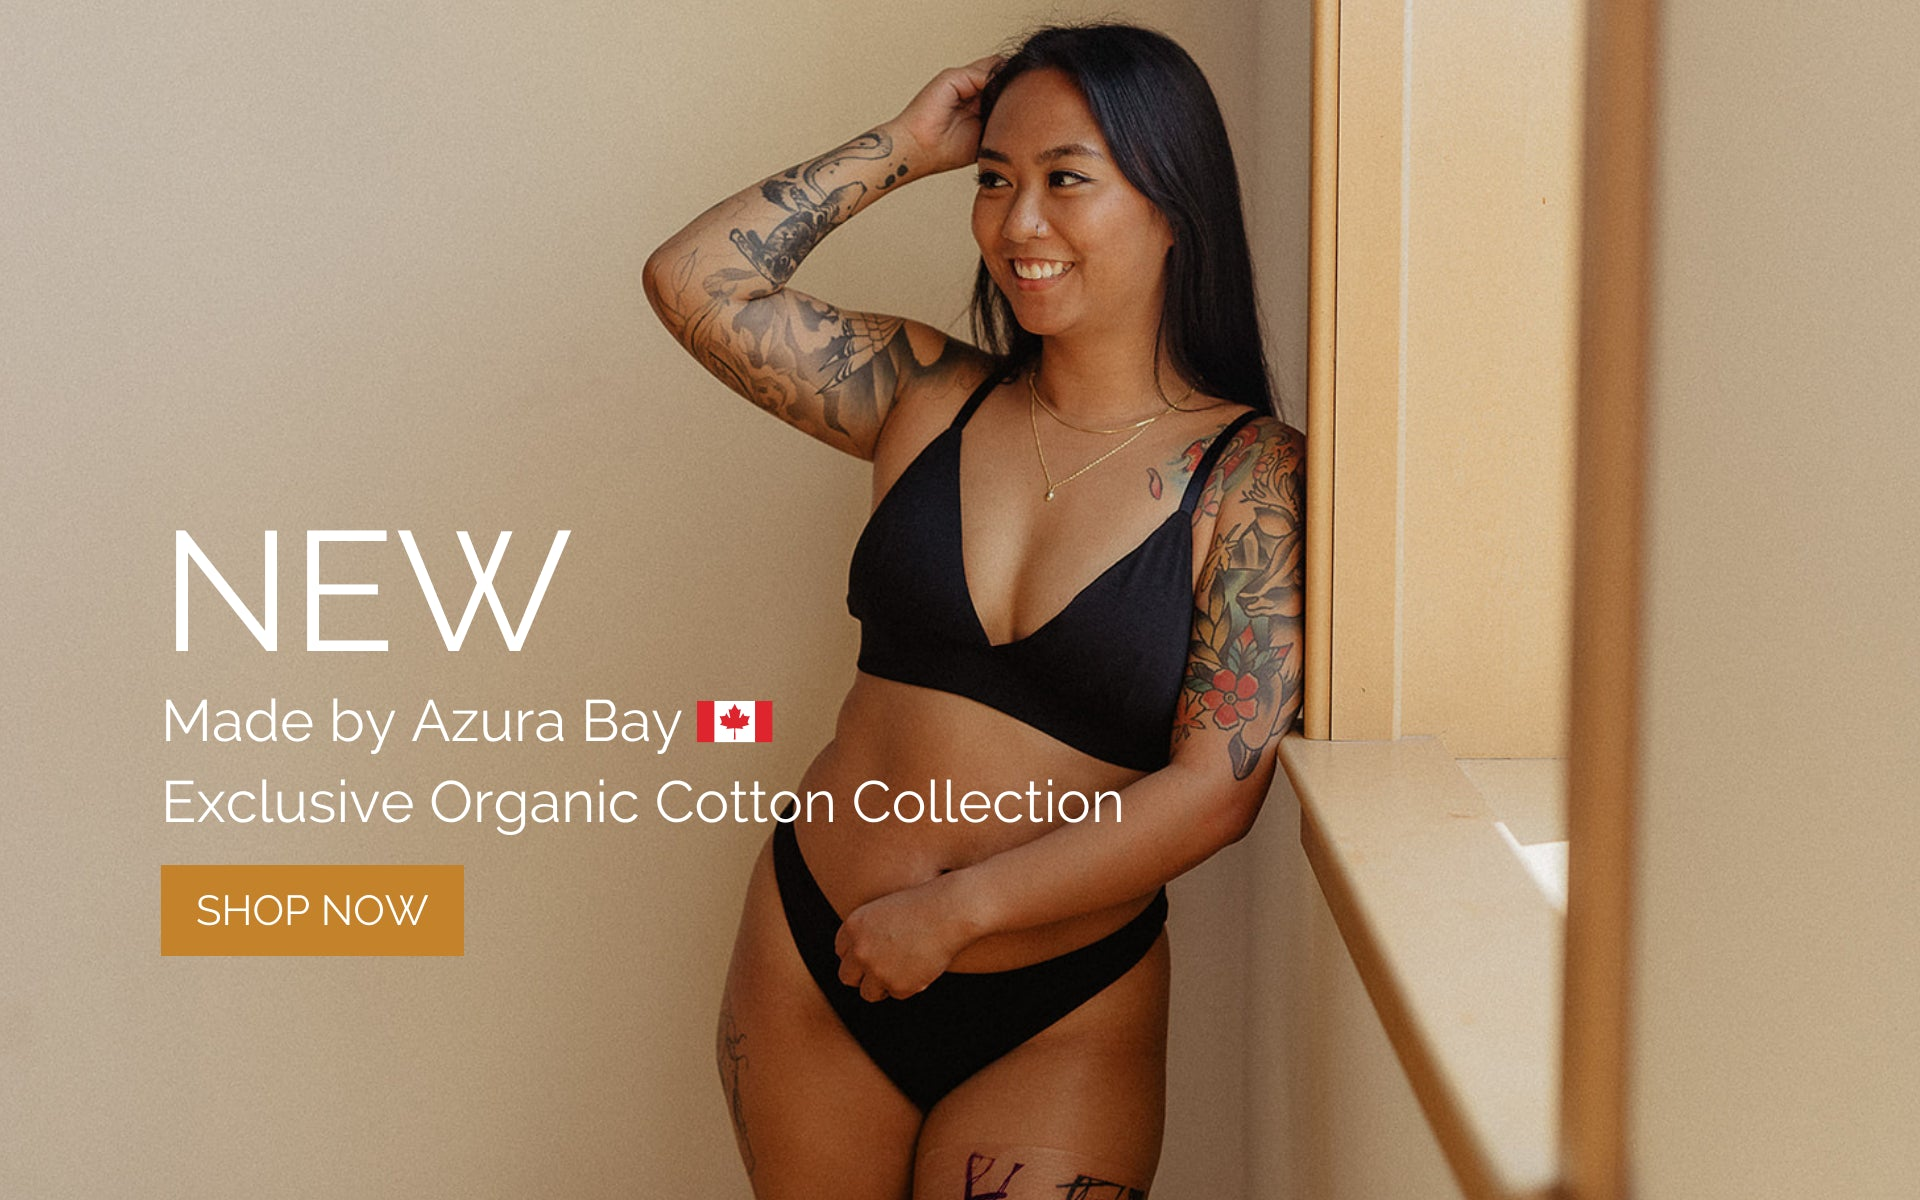 Organic Cotton Bralette + Underwear from Azura Bay